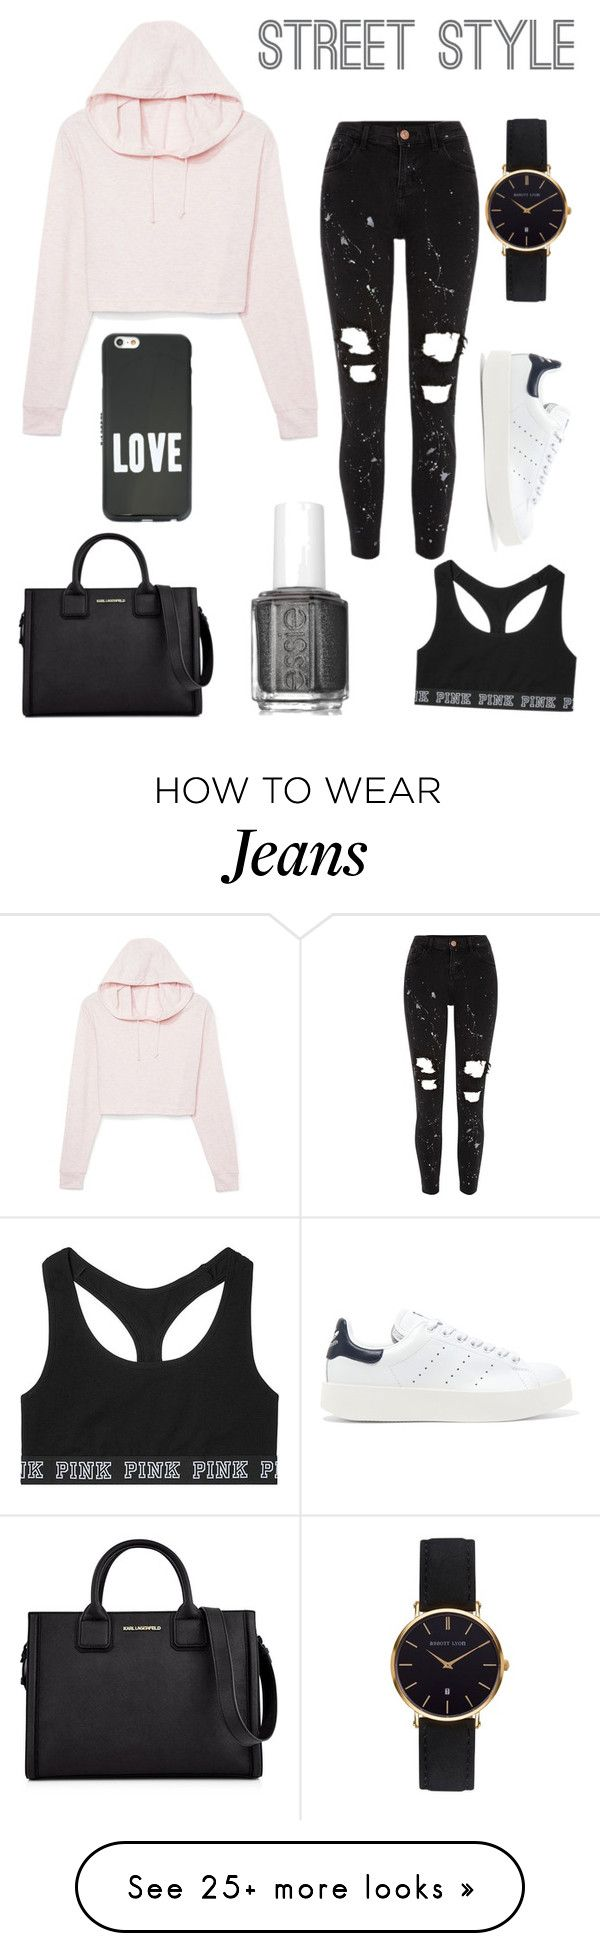 """Contest: pink cropped hoodie+black ripped jeans"" by emilierobidas on Polyvore featuring River Island, Abbott Lyon, Victoria's Secret, adidas Originals, Karl Lagerfeld, Givenchy and Essie"